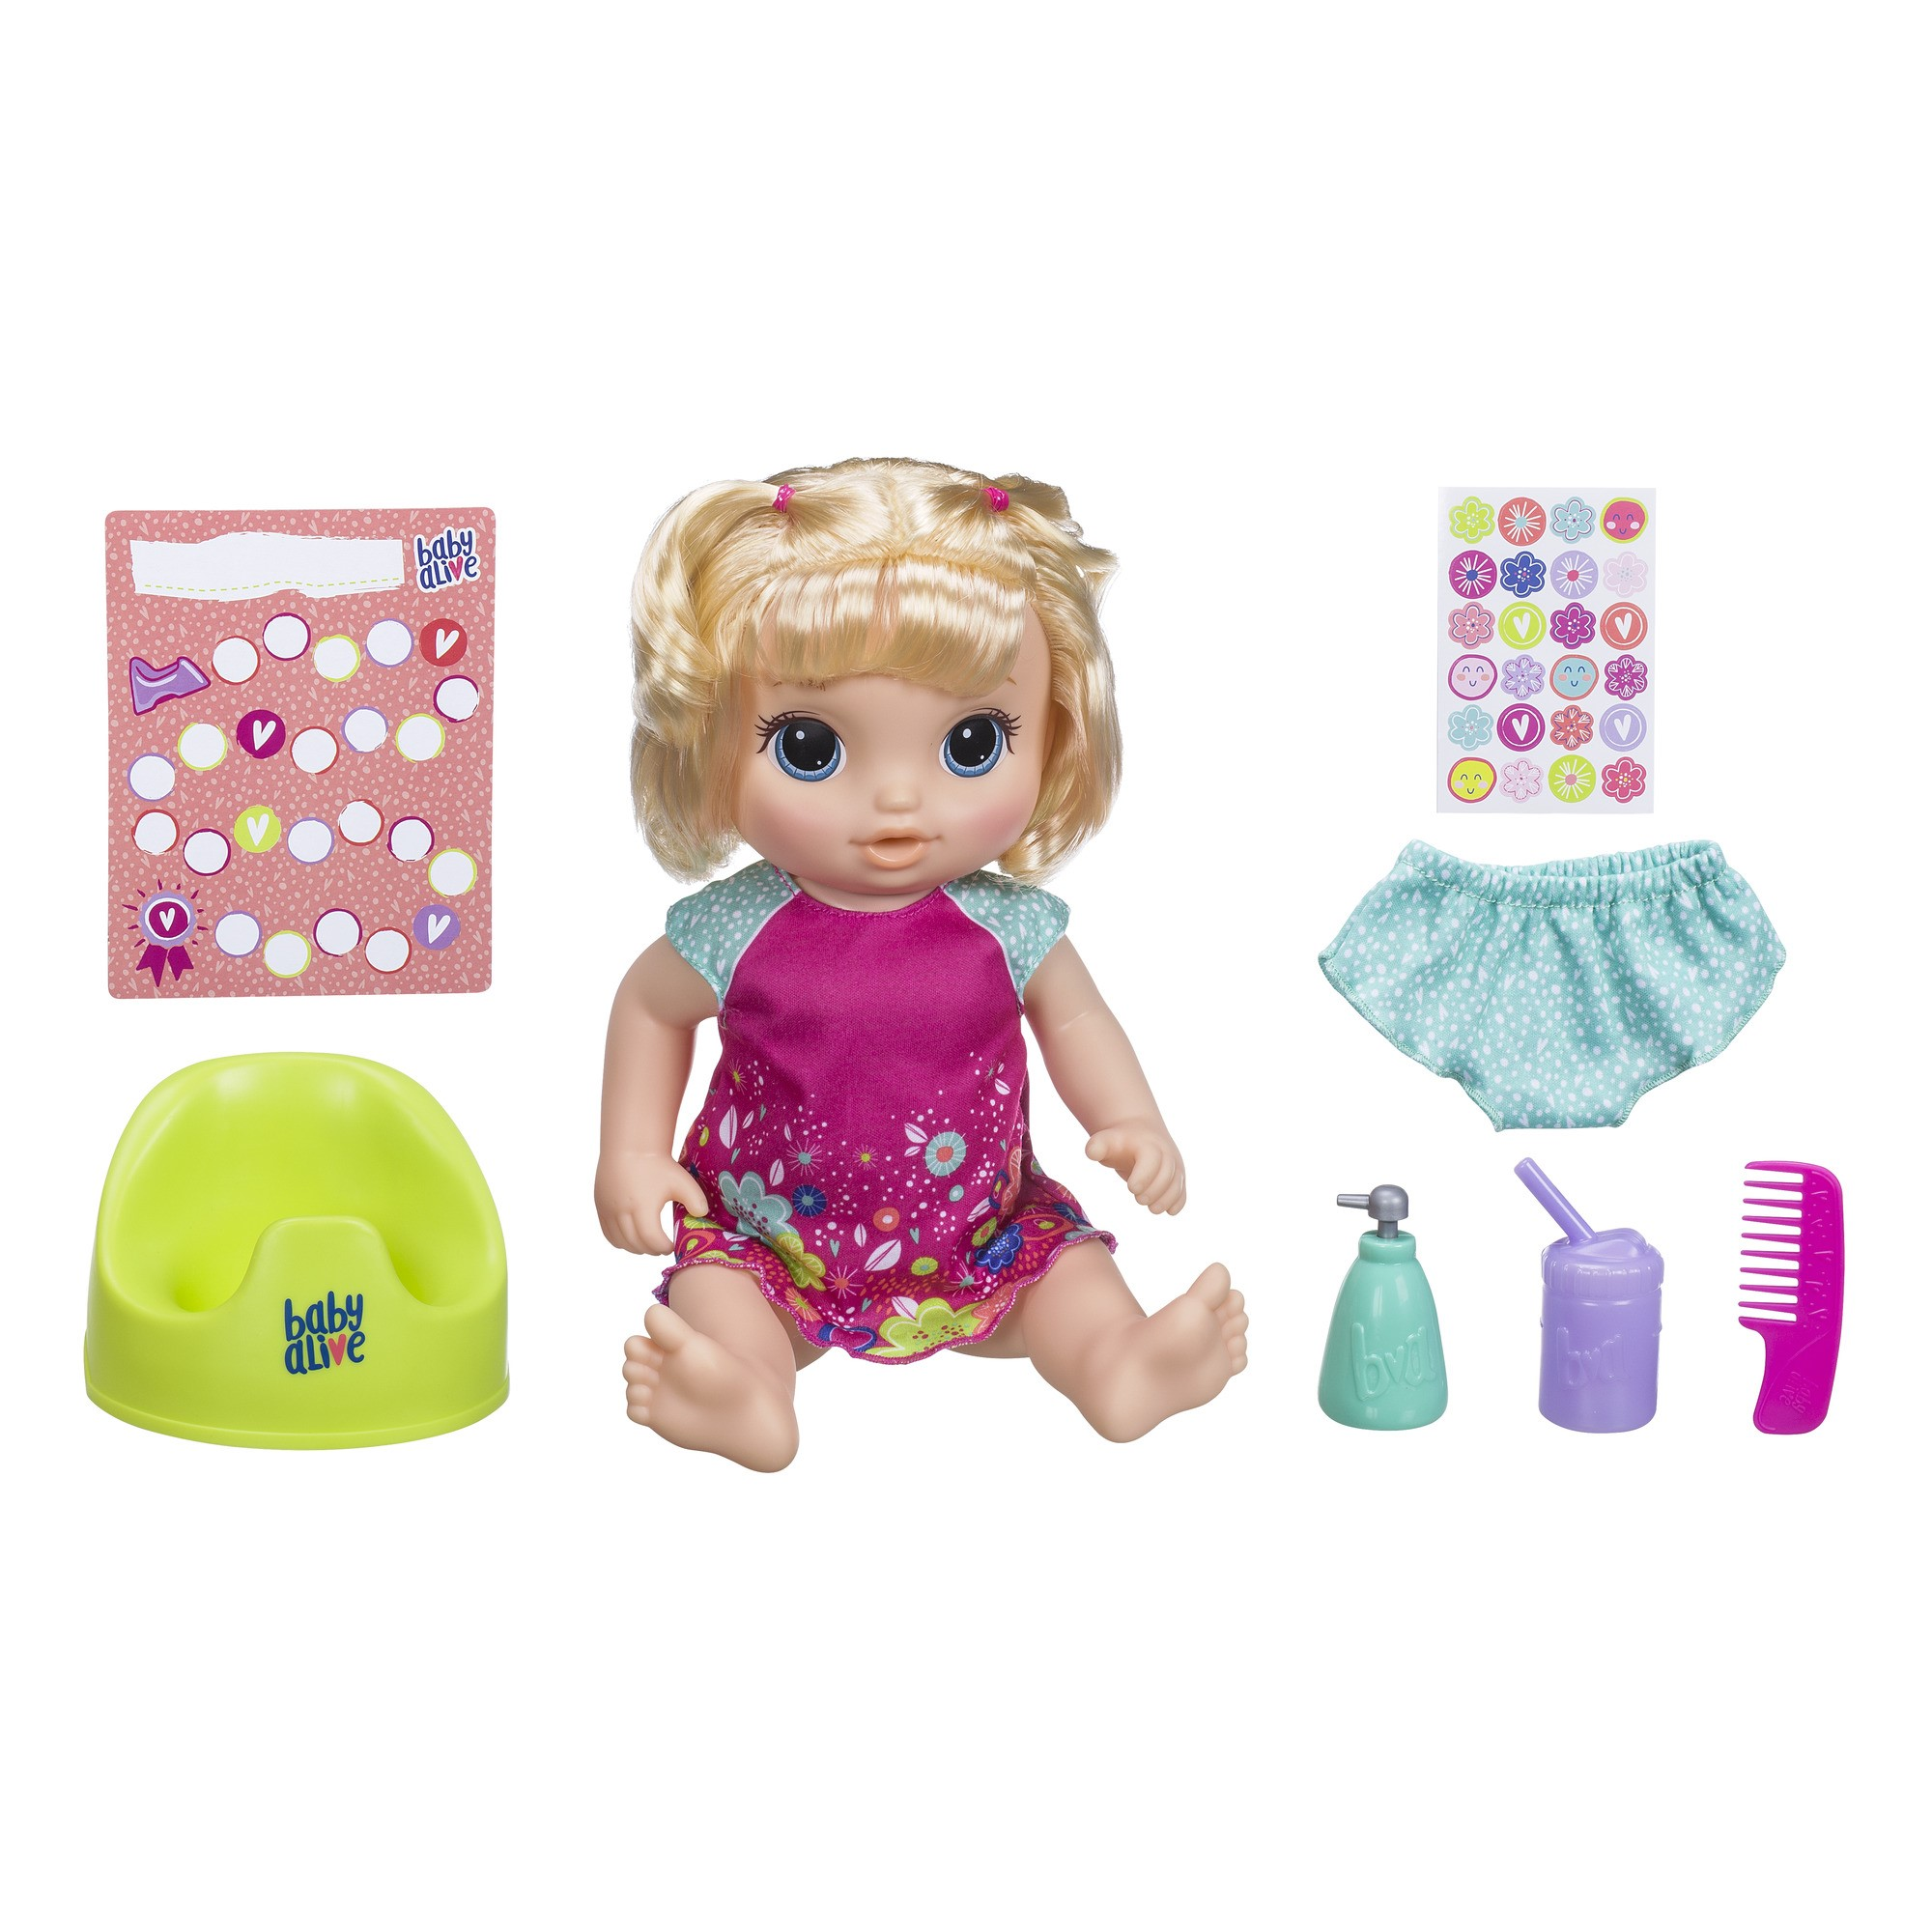 Baby Alive Potty Dance Baby Exclusive Red Curly Hair Speaks Sings Hasbro CHOP